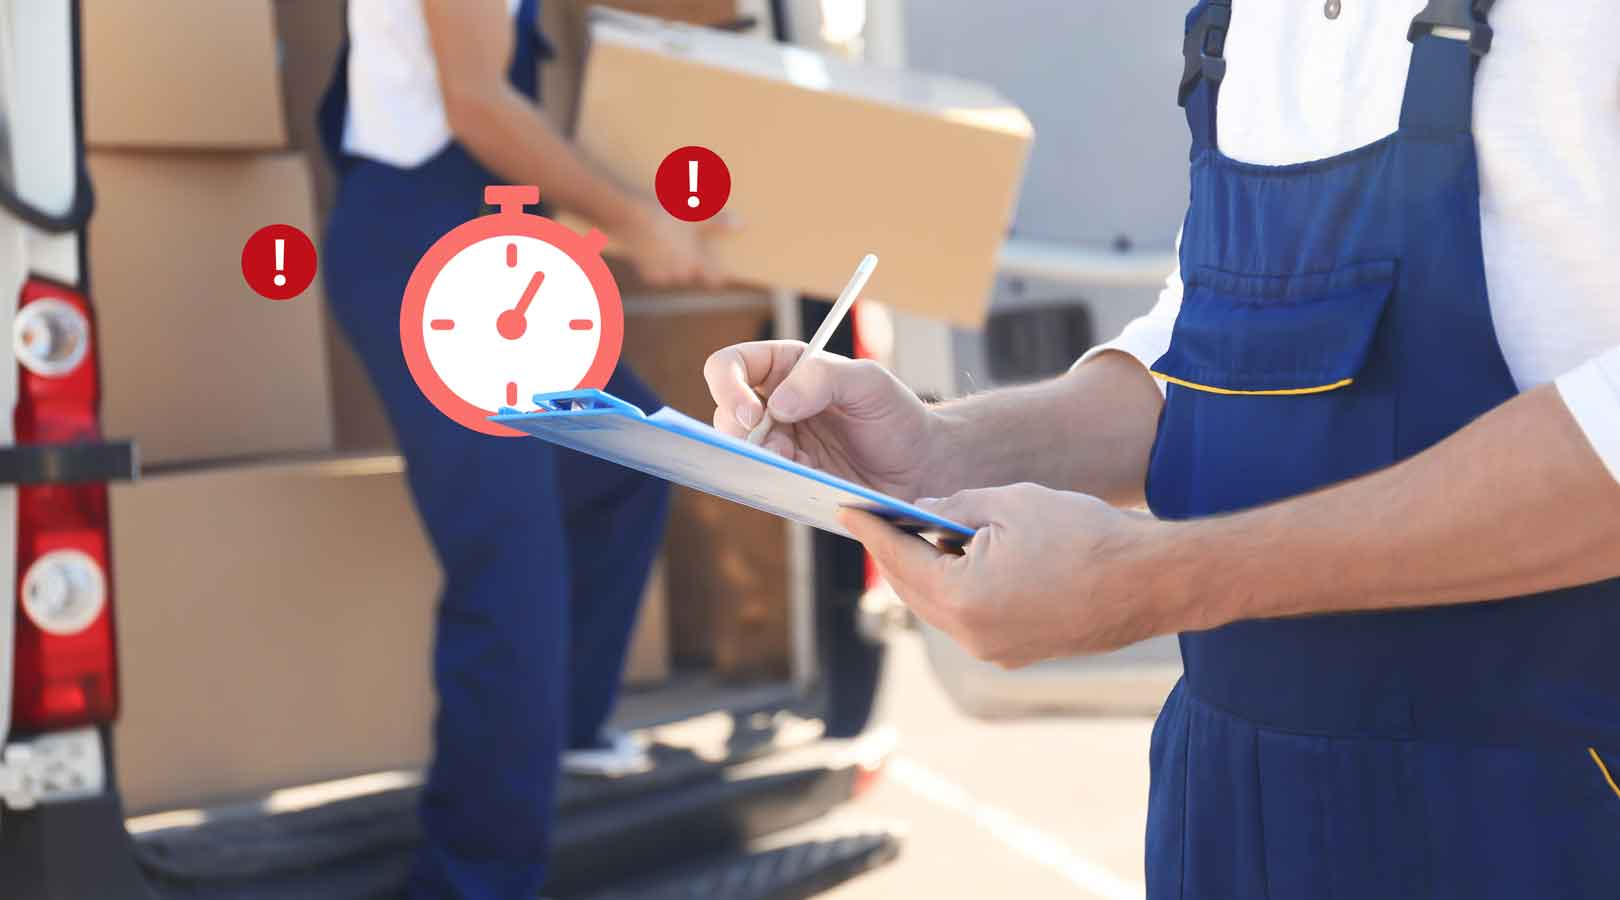 How to Fix and Prevent a Late Delivery